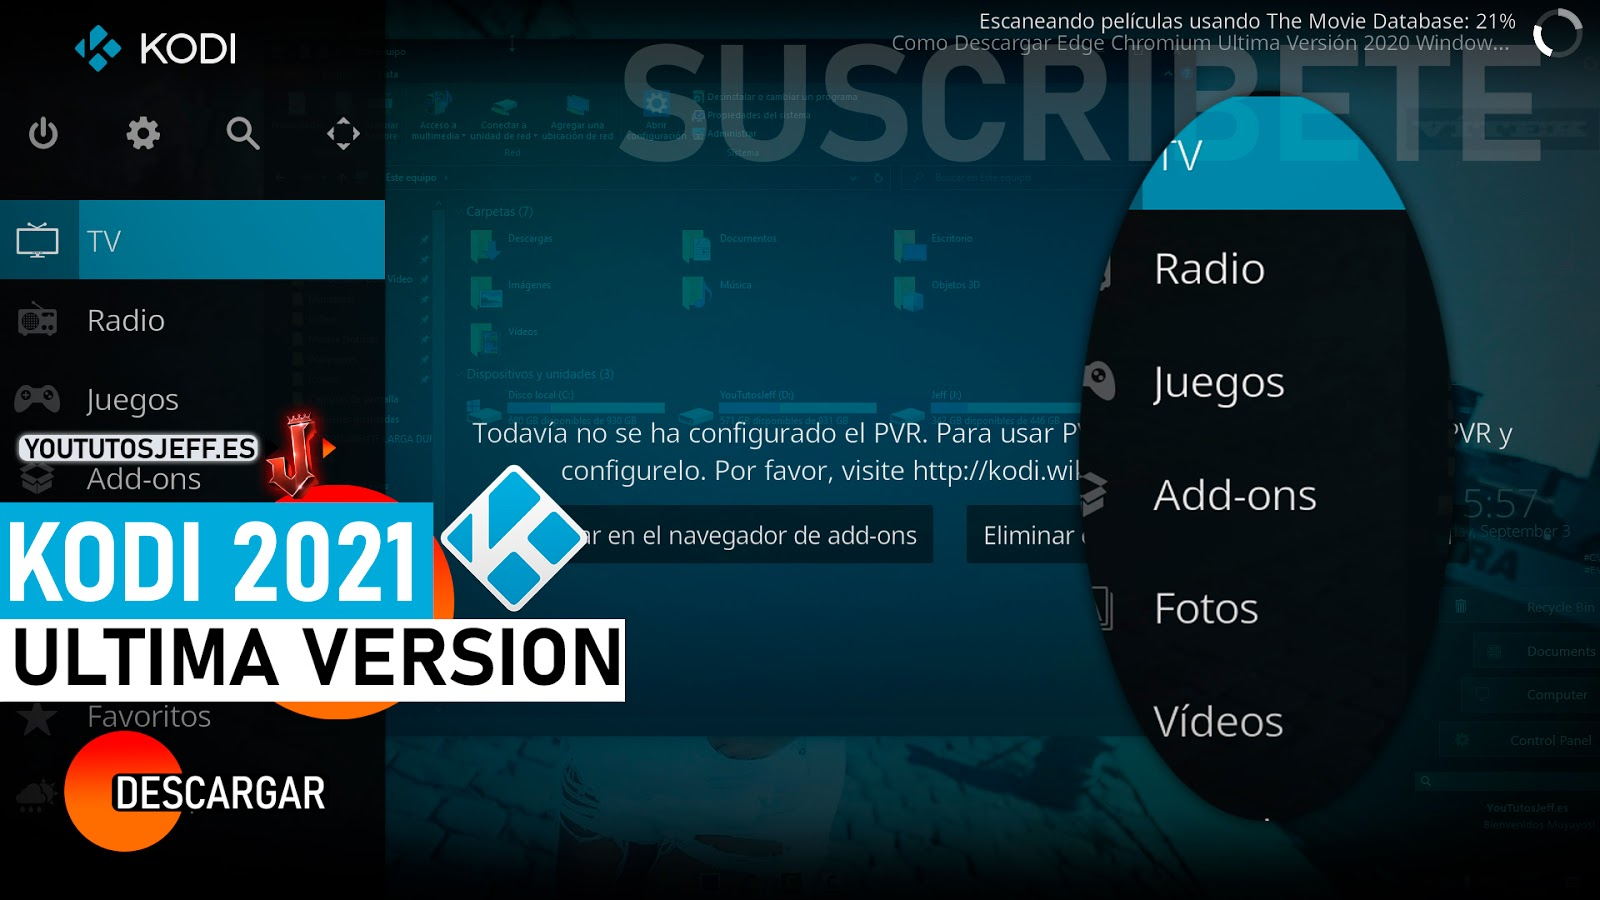 Como Descargar Kodi Ultima Version 2021 FULL ESPAÑOL